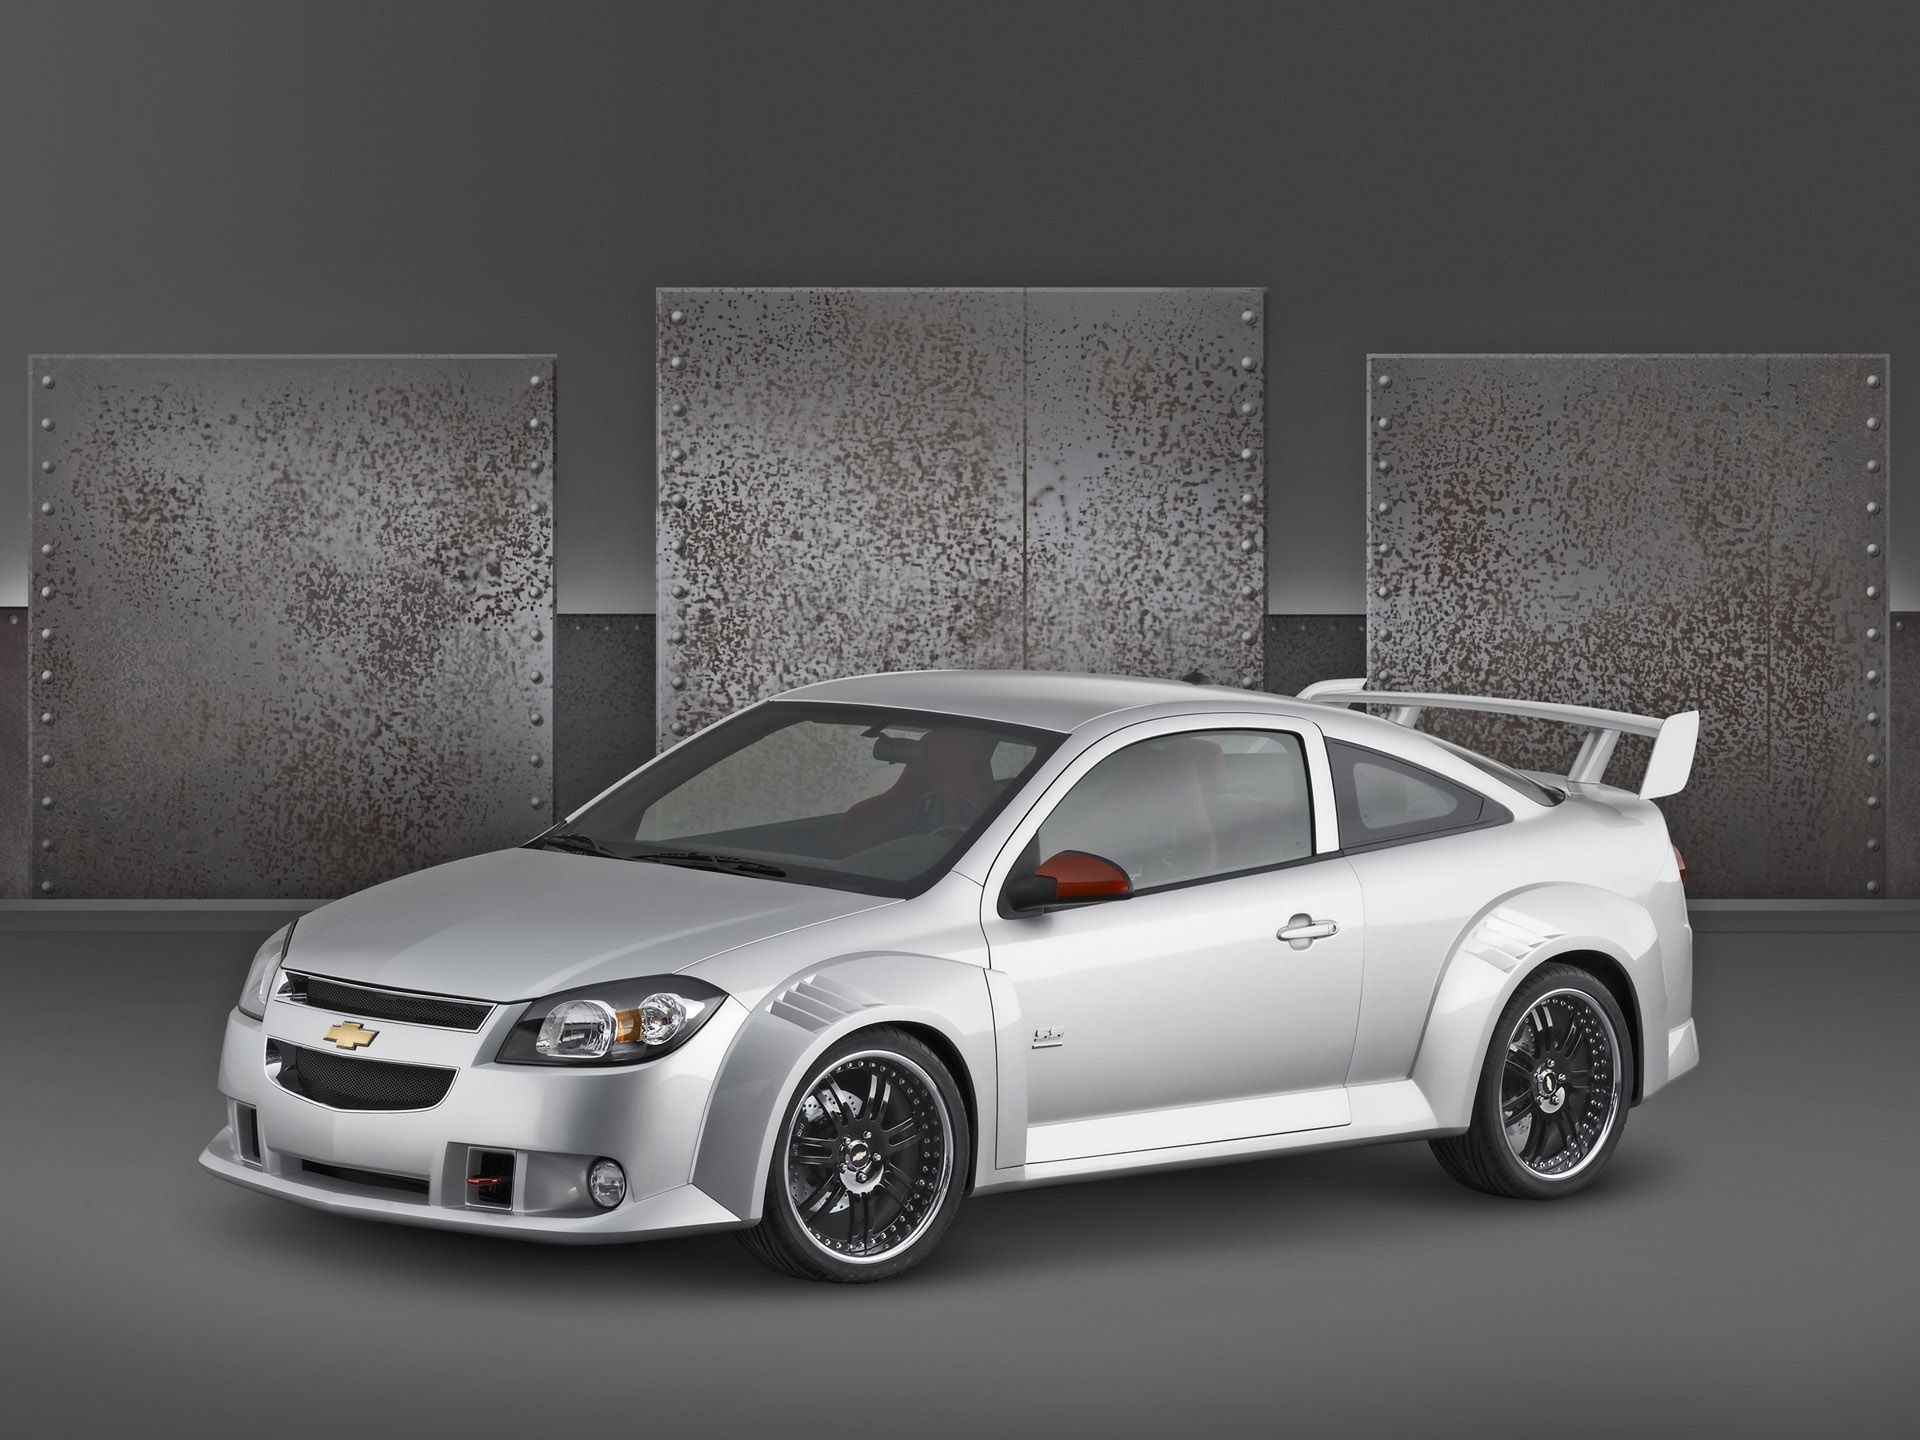 Chevrolet Cobalt Ss Pure Beauty Chevy Fancy Cars Cool